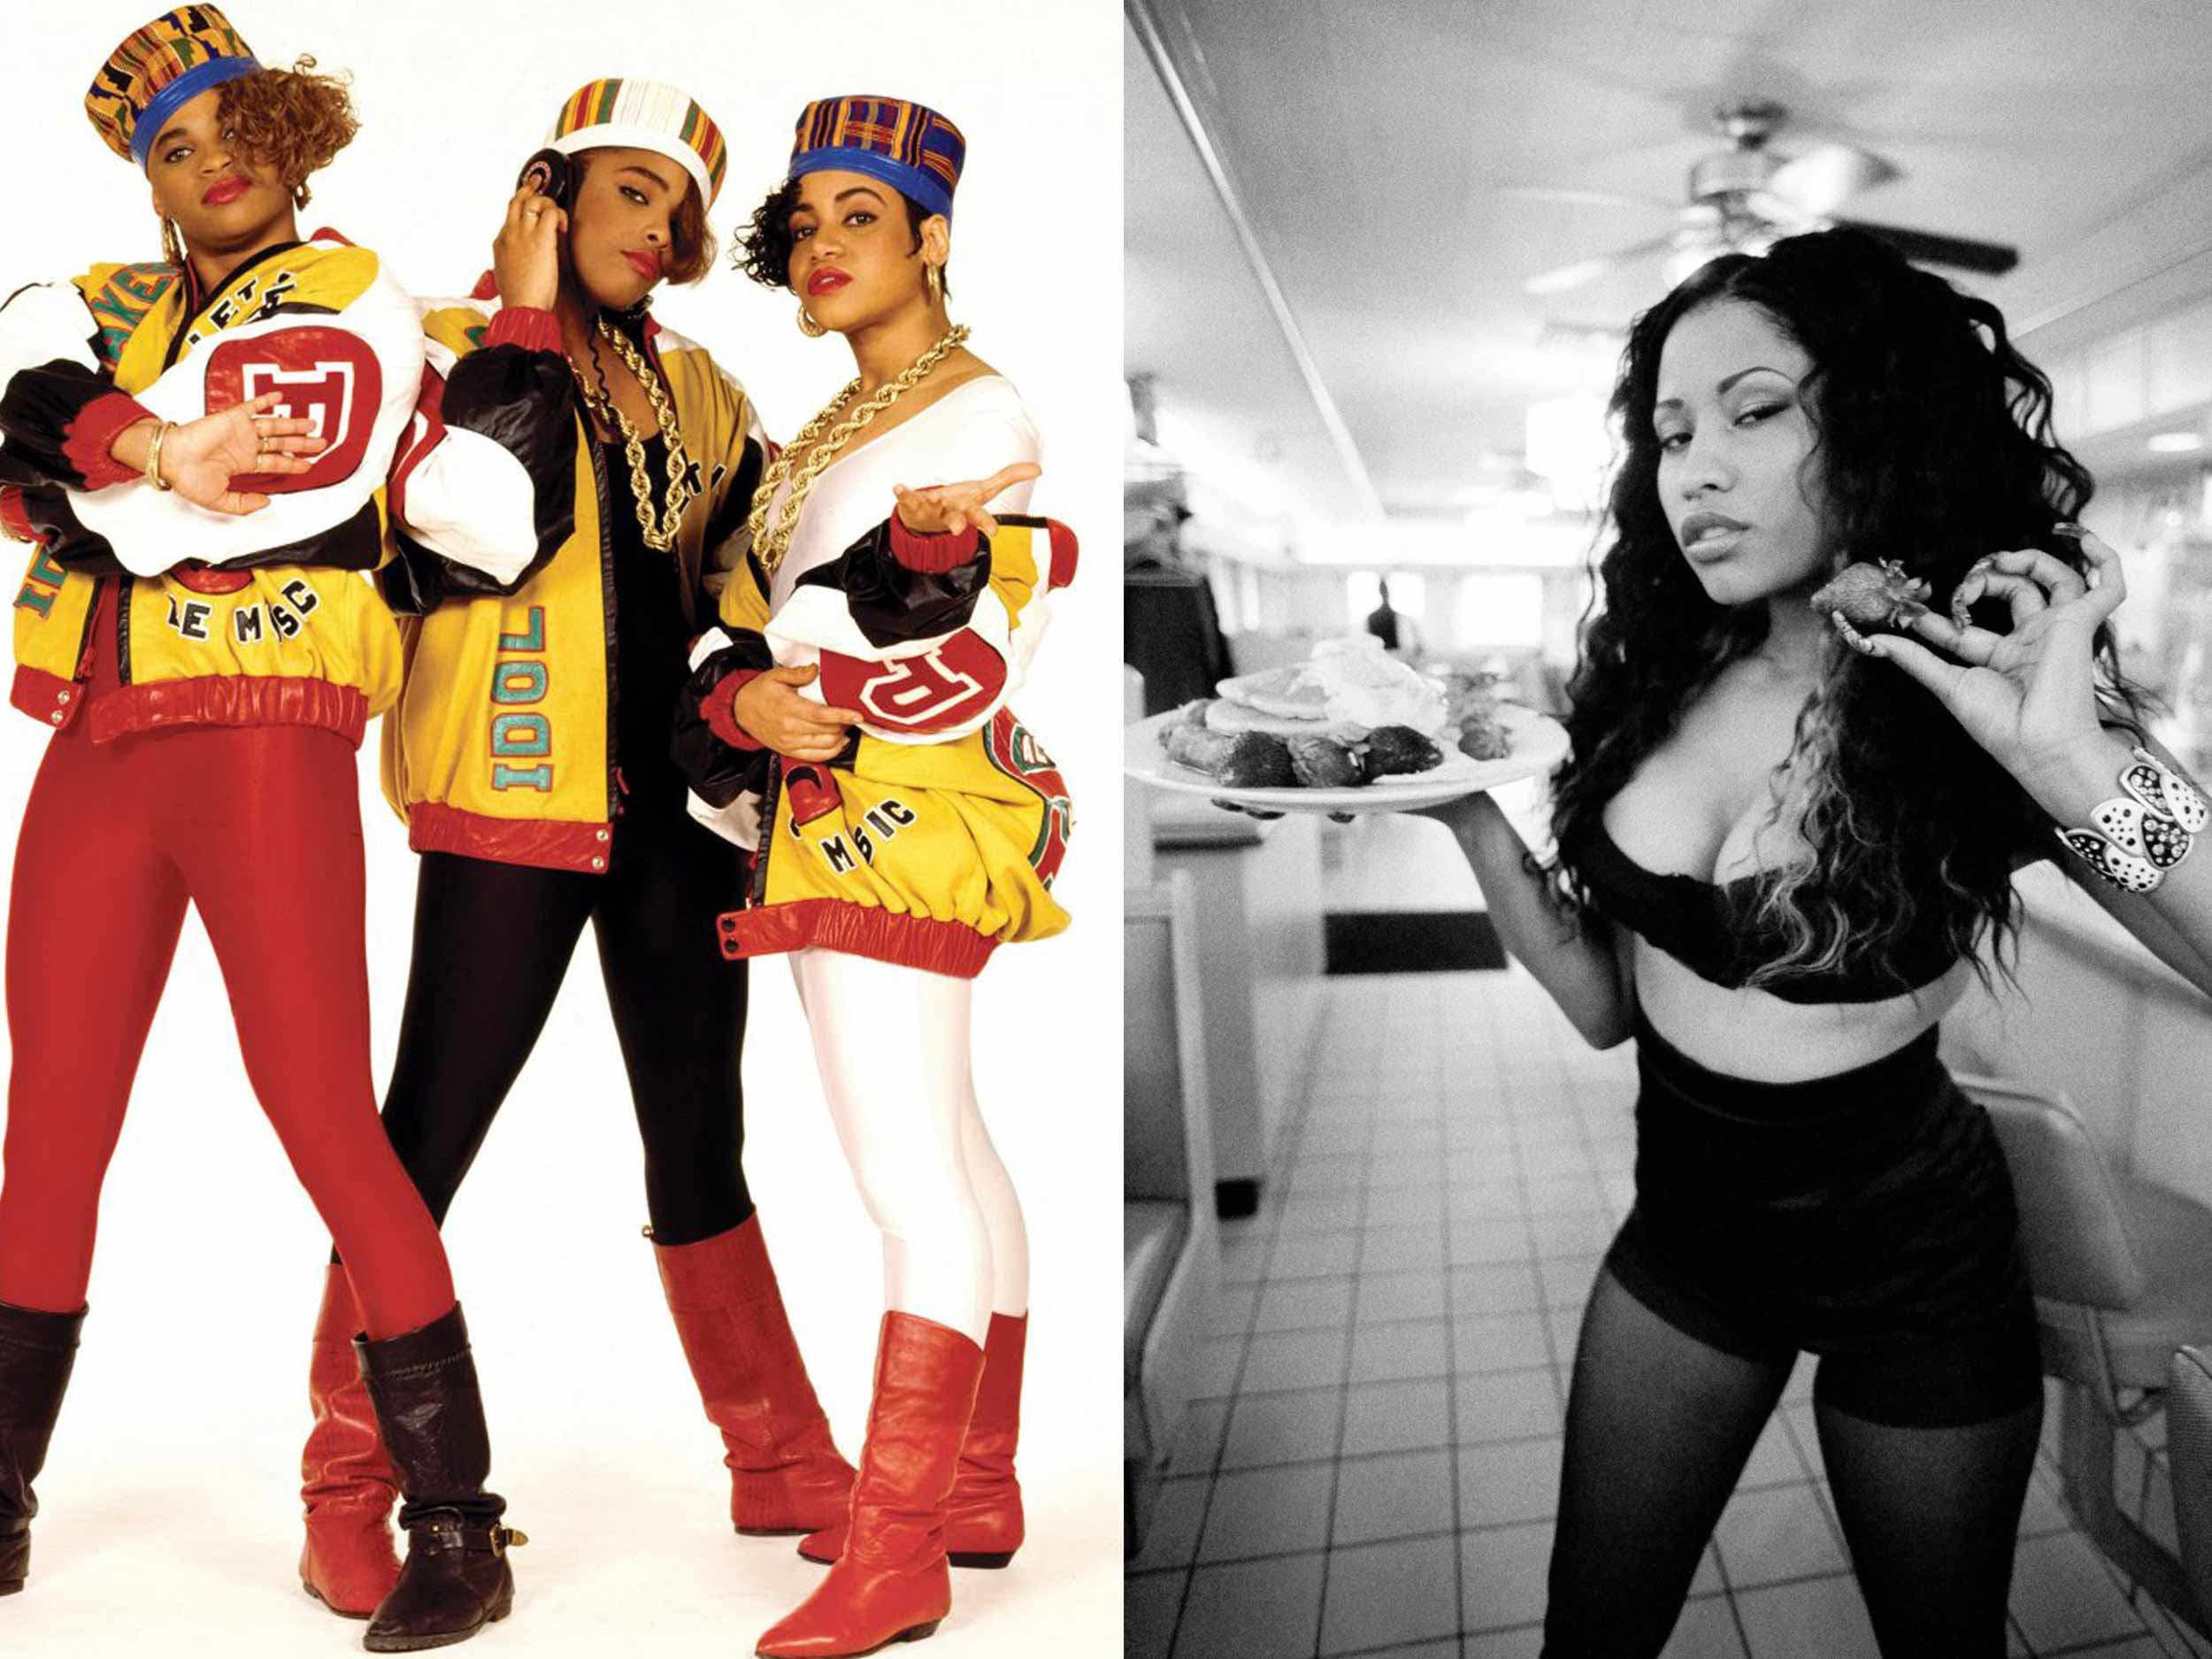 'The music united us': 45 years of hip hop, told by the women who shaped the phenomenon